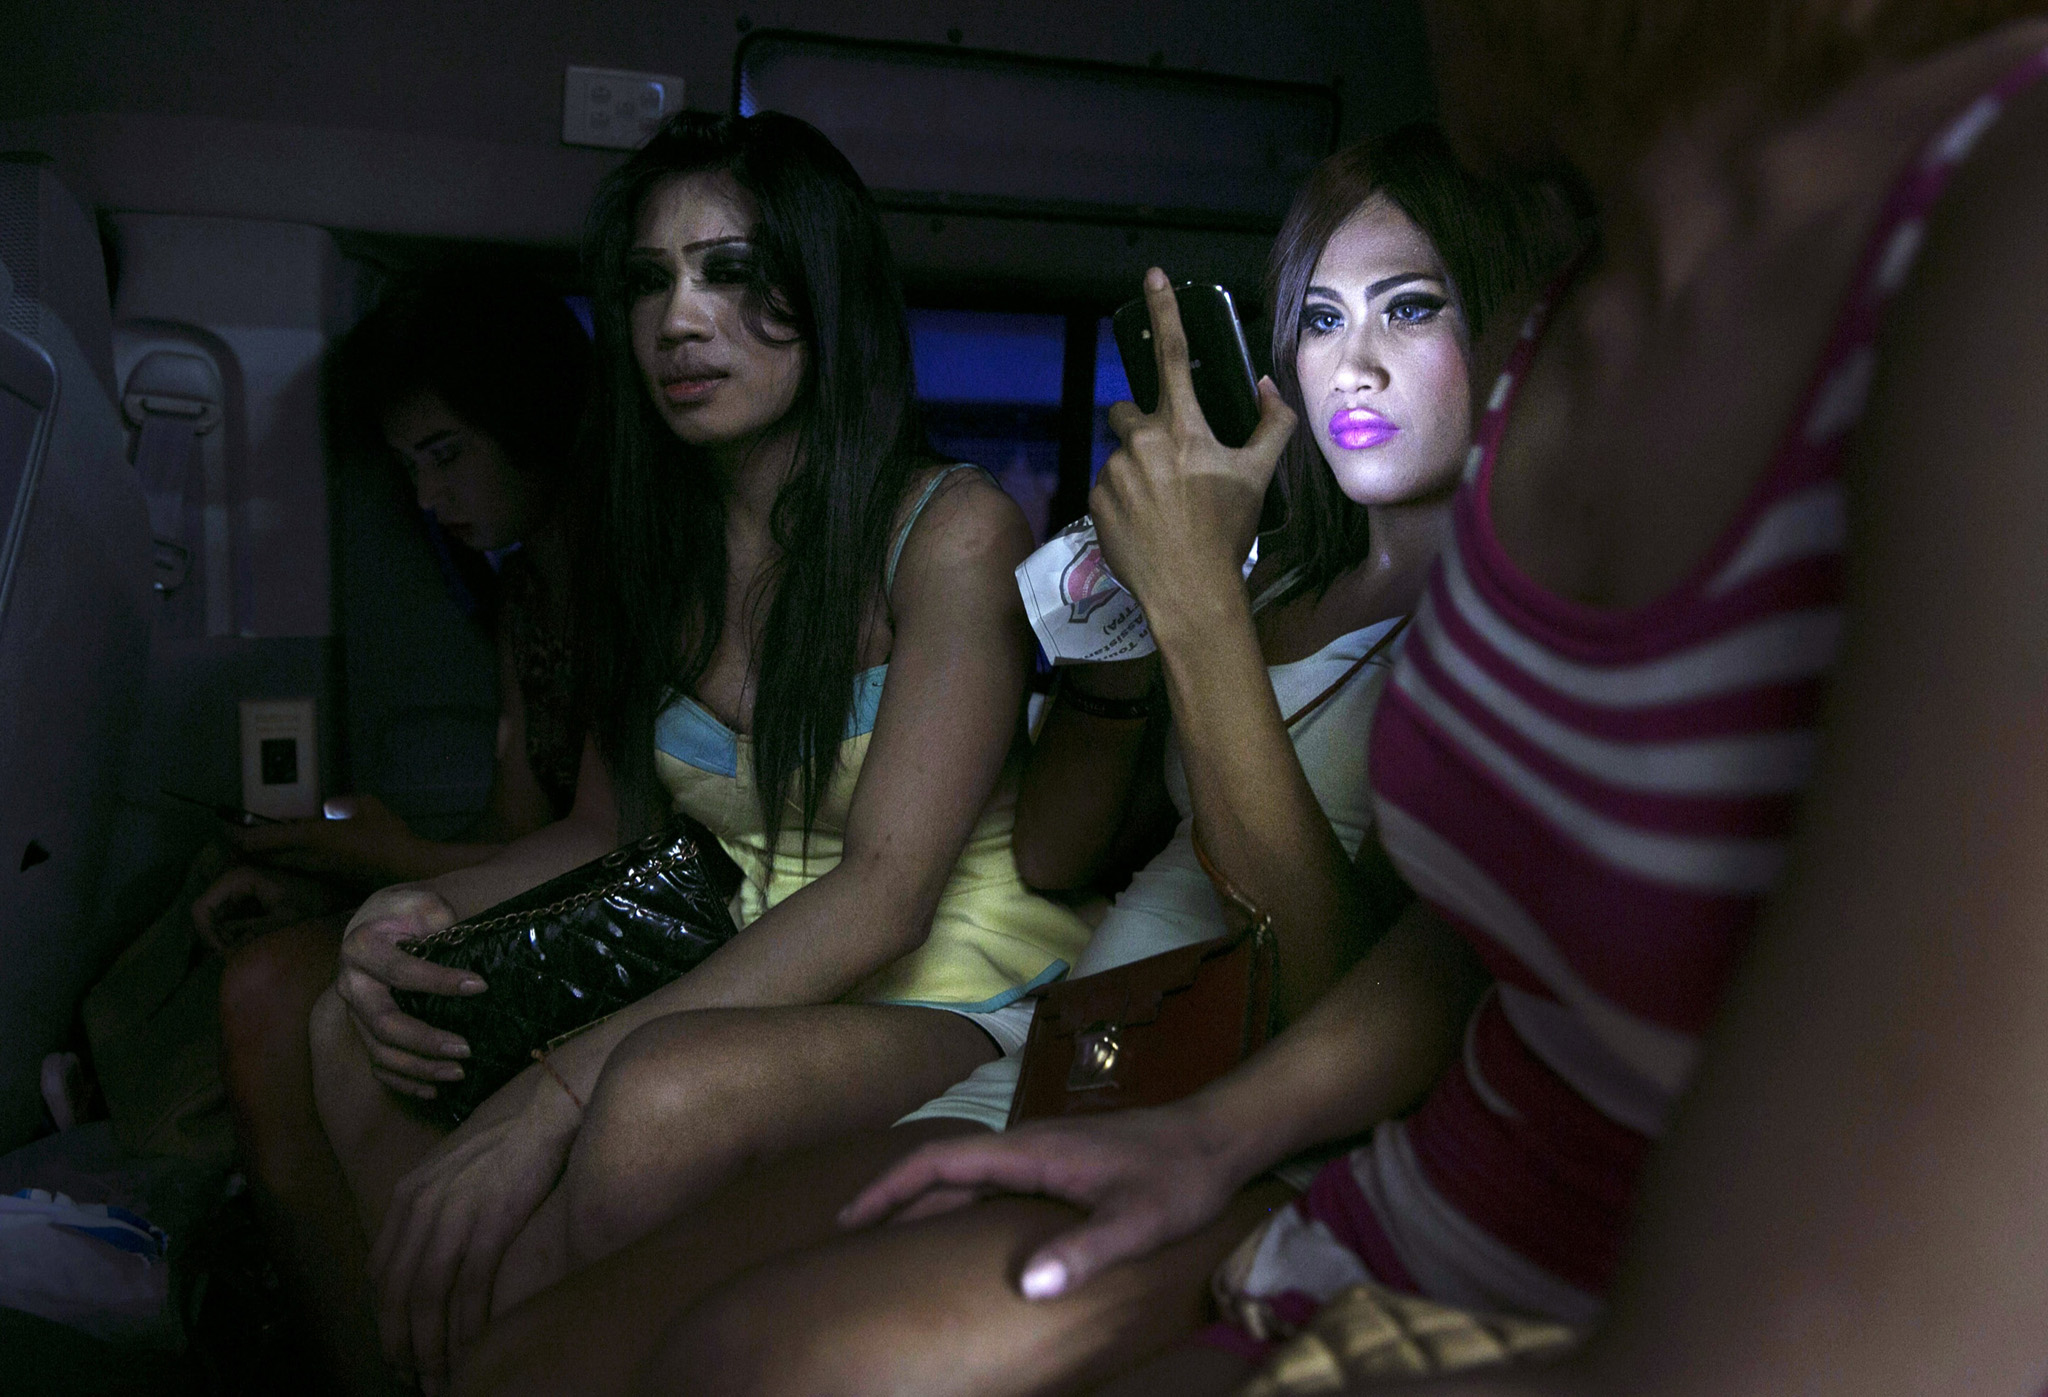 ***BESTPIX***Crime Reduction Campaign In Pattaya Clamps Down On Thai Ladyboys...PATTAYA, THAILAND - SEPTEMBER 21: Thai ladyboys are detained inside a police van on their way to the police station September 21, 2014 in Pattaya, Thailand. Pattaya is tackling sex tourism and crime as the city attempts to clean up it's image doing nightly sweeps in the popular red-light district called the Walking Street. Ladyboy sex workers are being targeted by police who are assisted by members of the Foreign Tourist Police Assistants (FTPA). They are fined 300 Thai bhat ( almost $10 US). (Photo by Paula Bronstein/Getty Images)***BESTPIX***